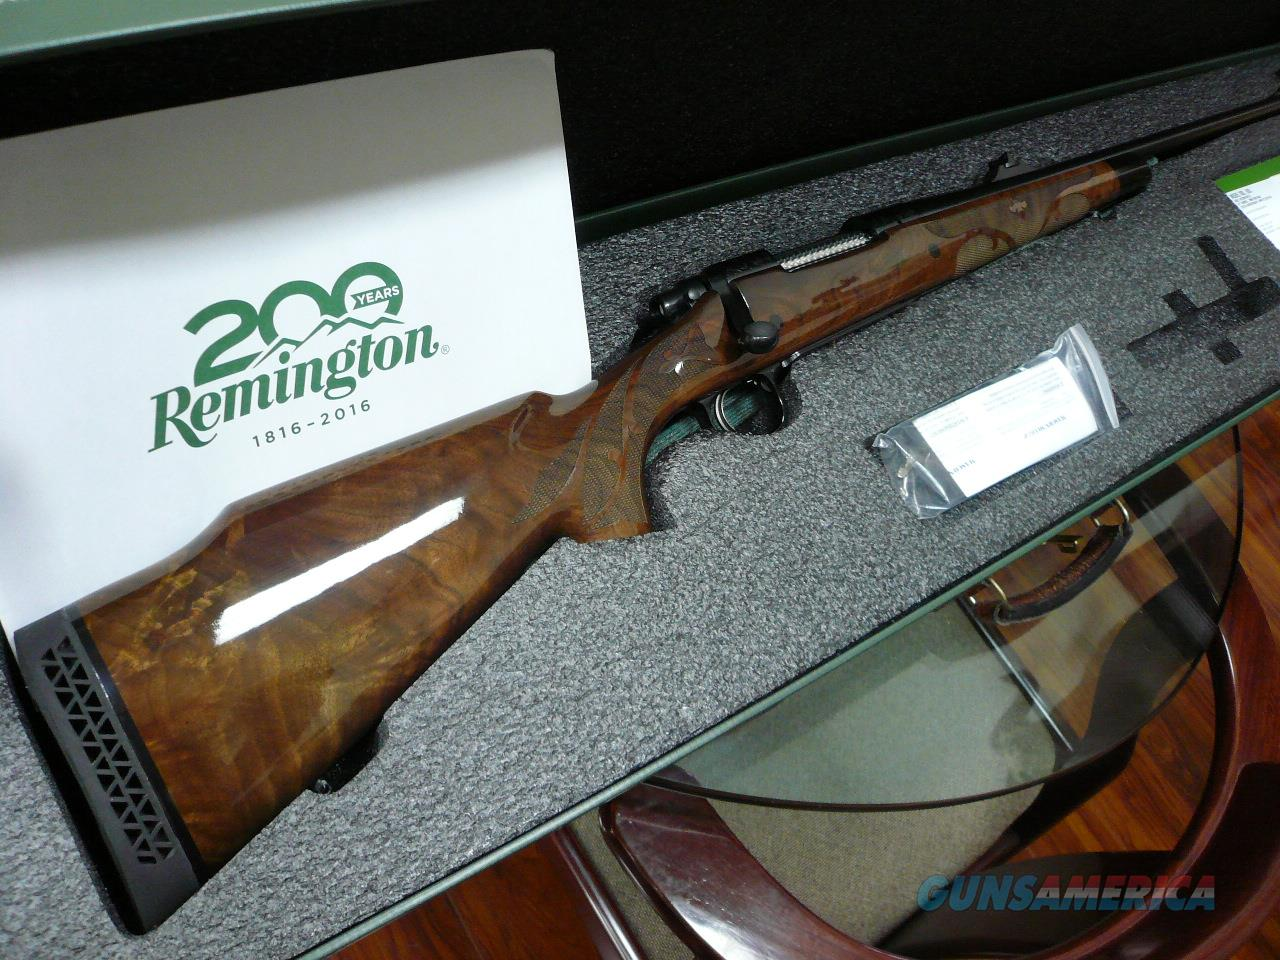 Model-700/200th yr Anny Limited Edition 7mm rem mag  Guns > Rifles > Remington Rifles - Modern > Model 700 > Sporting